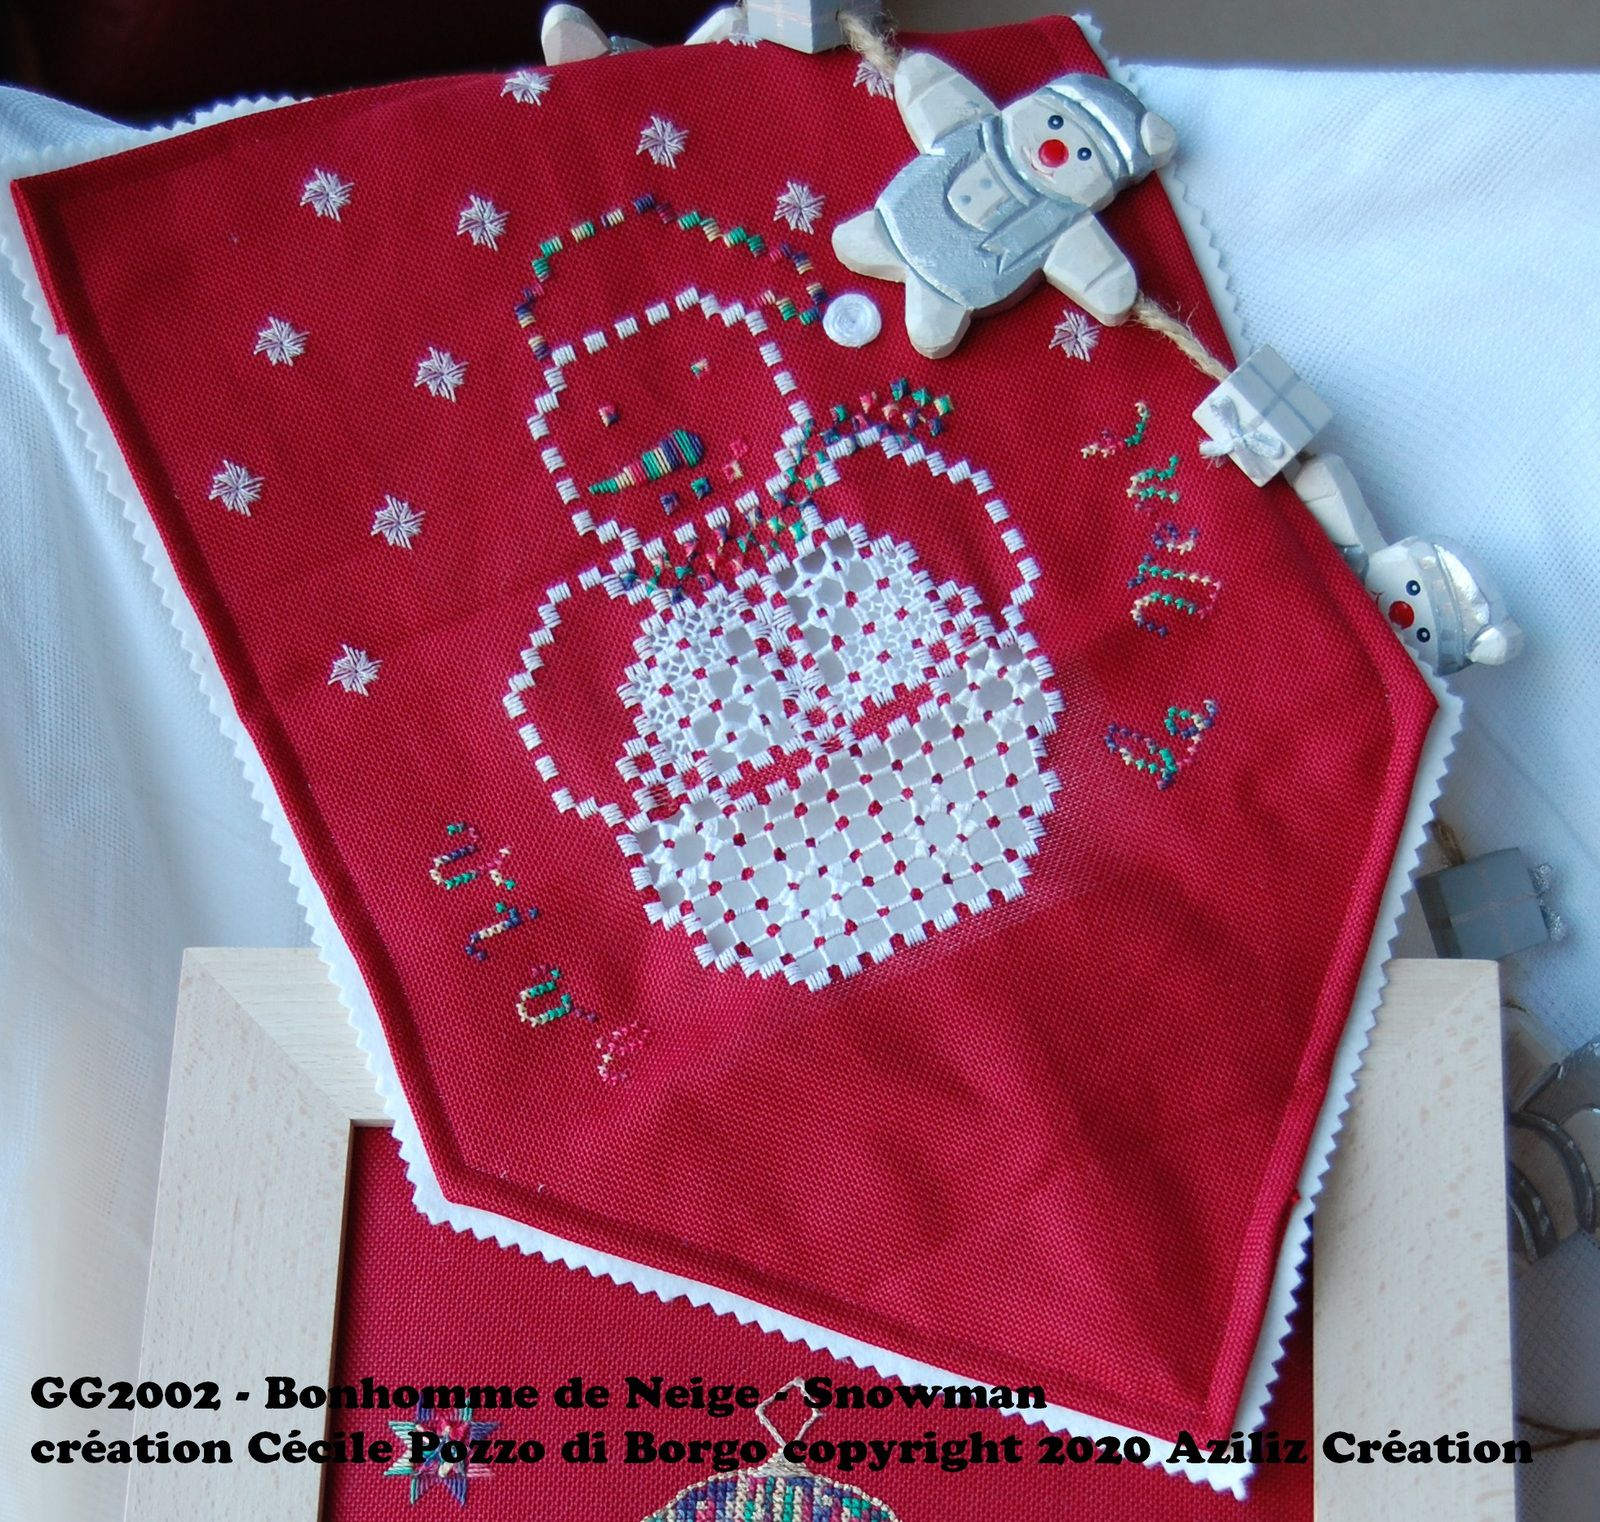 grille gratuite pour broderie hardanger - free pattern for hardanger embroidery